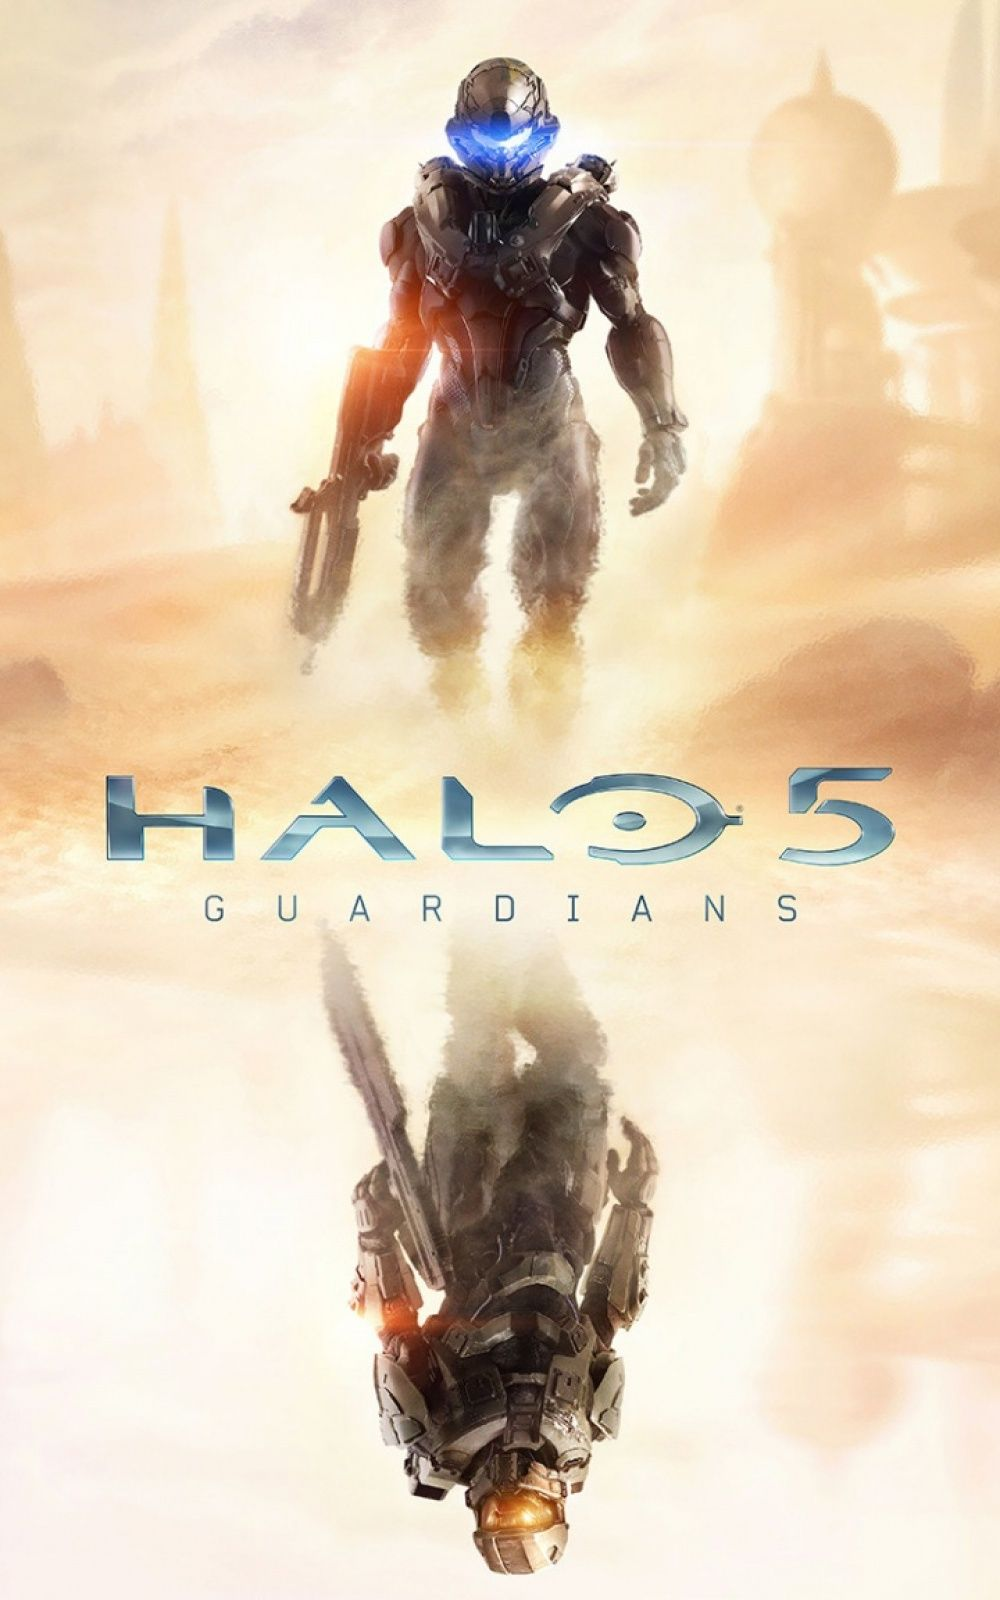 1000x1600 Halo 5 Guardians Mobile Wallpaper - Mobiles Wall